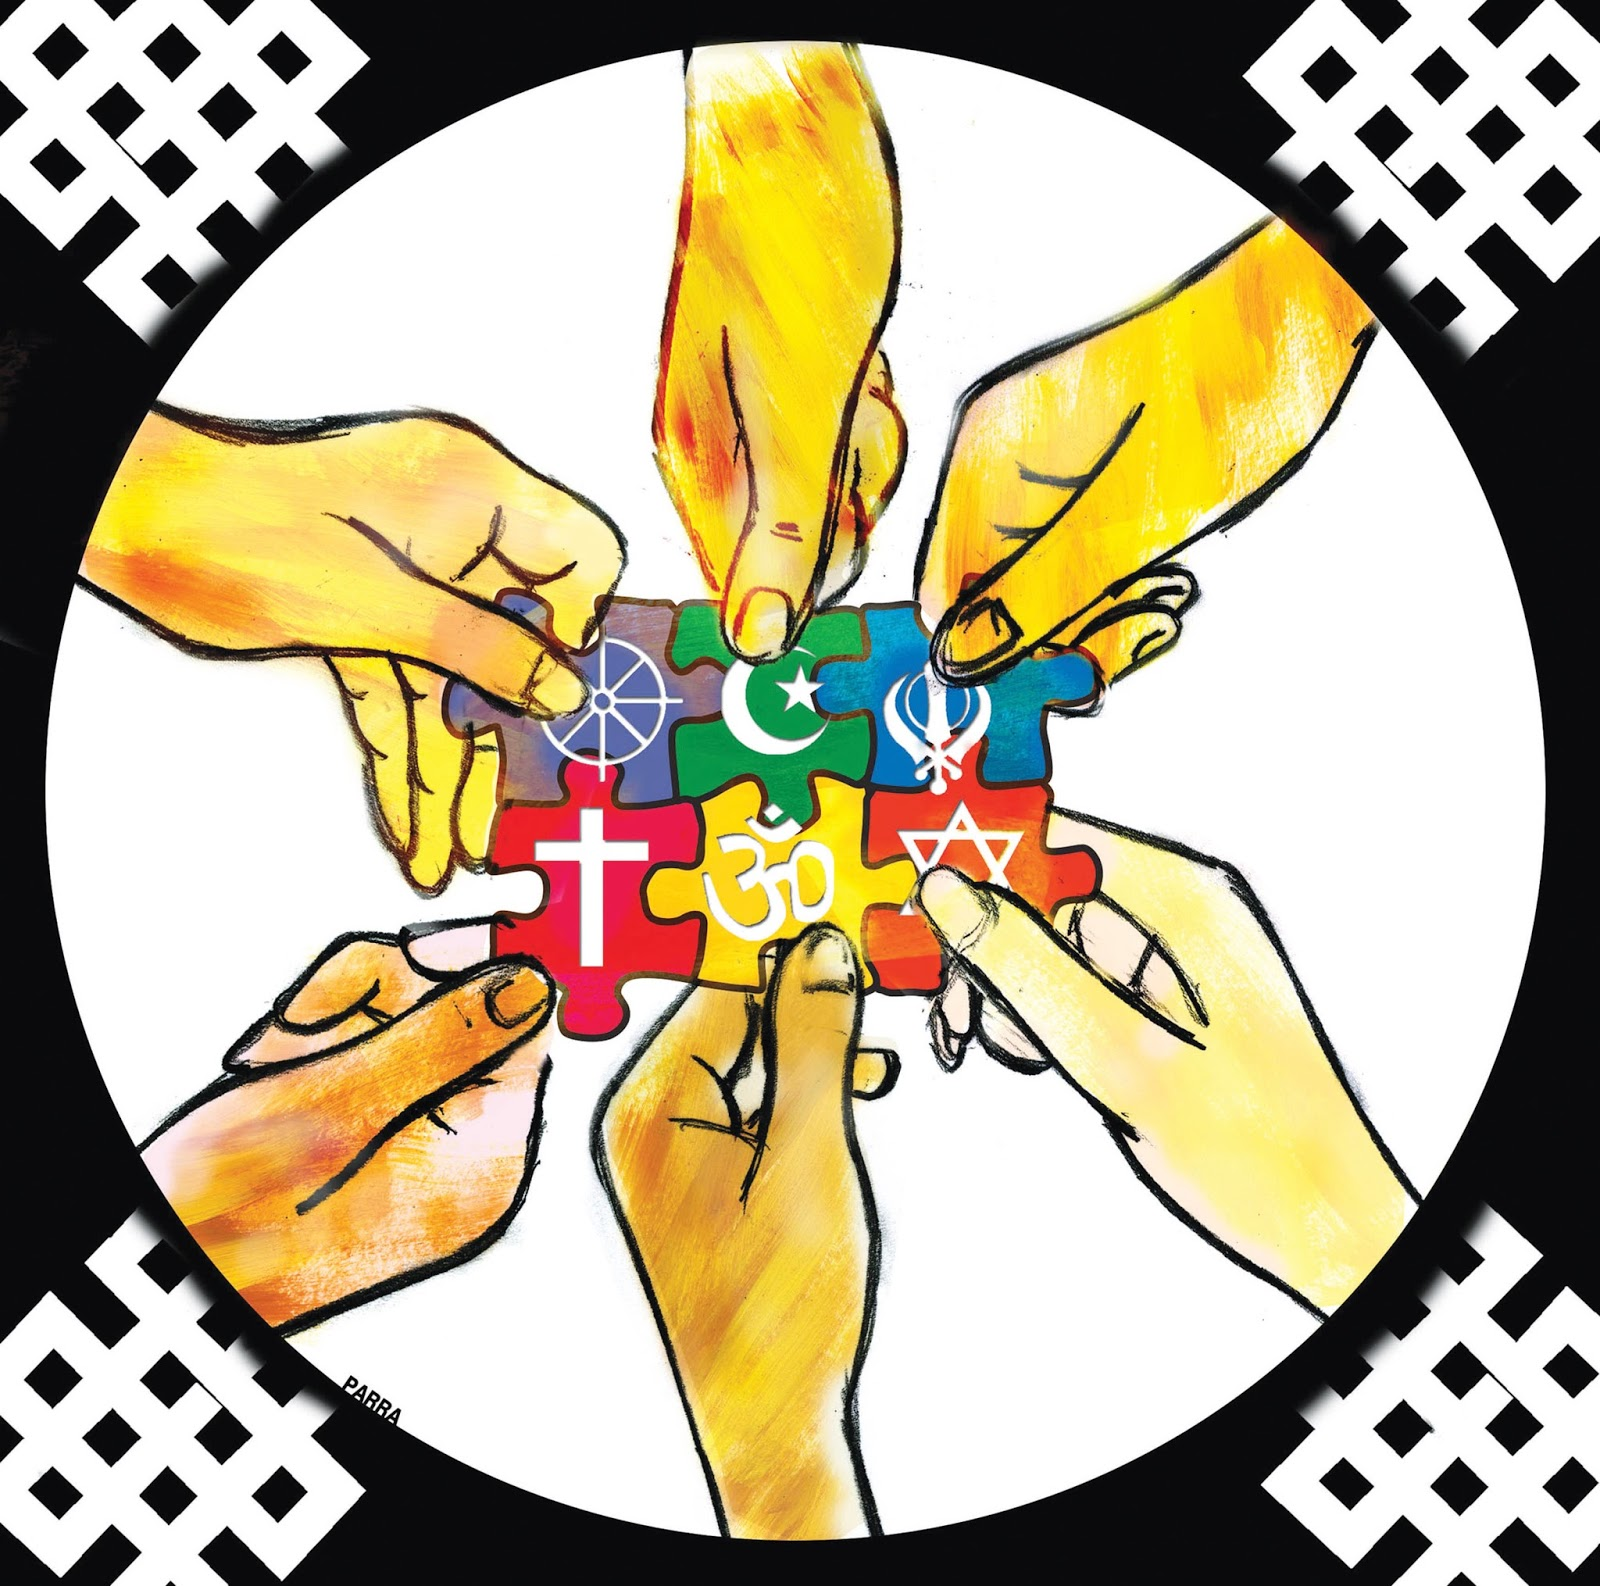 interfaith tolerance Posts about interfaith tolerance written by zia h shah, salma javid khan, rafiq a tschannen, rabyam, and zakariavirk.